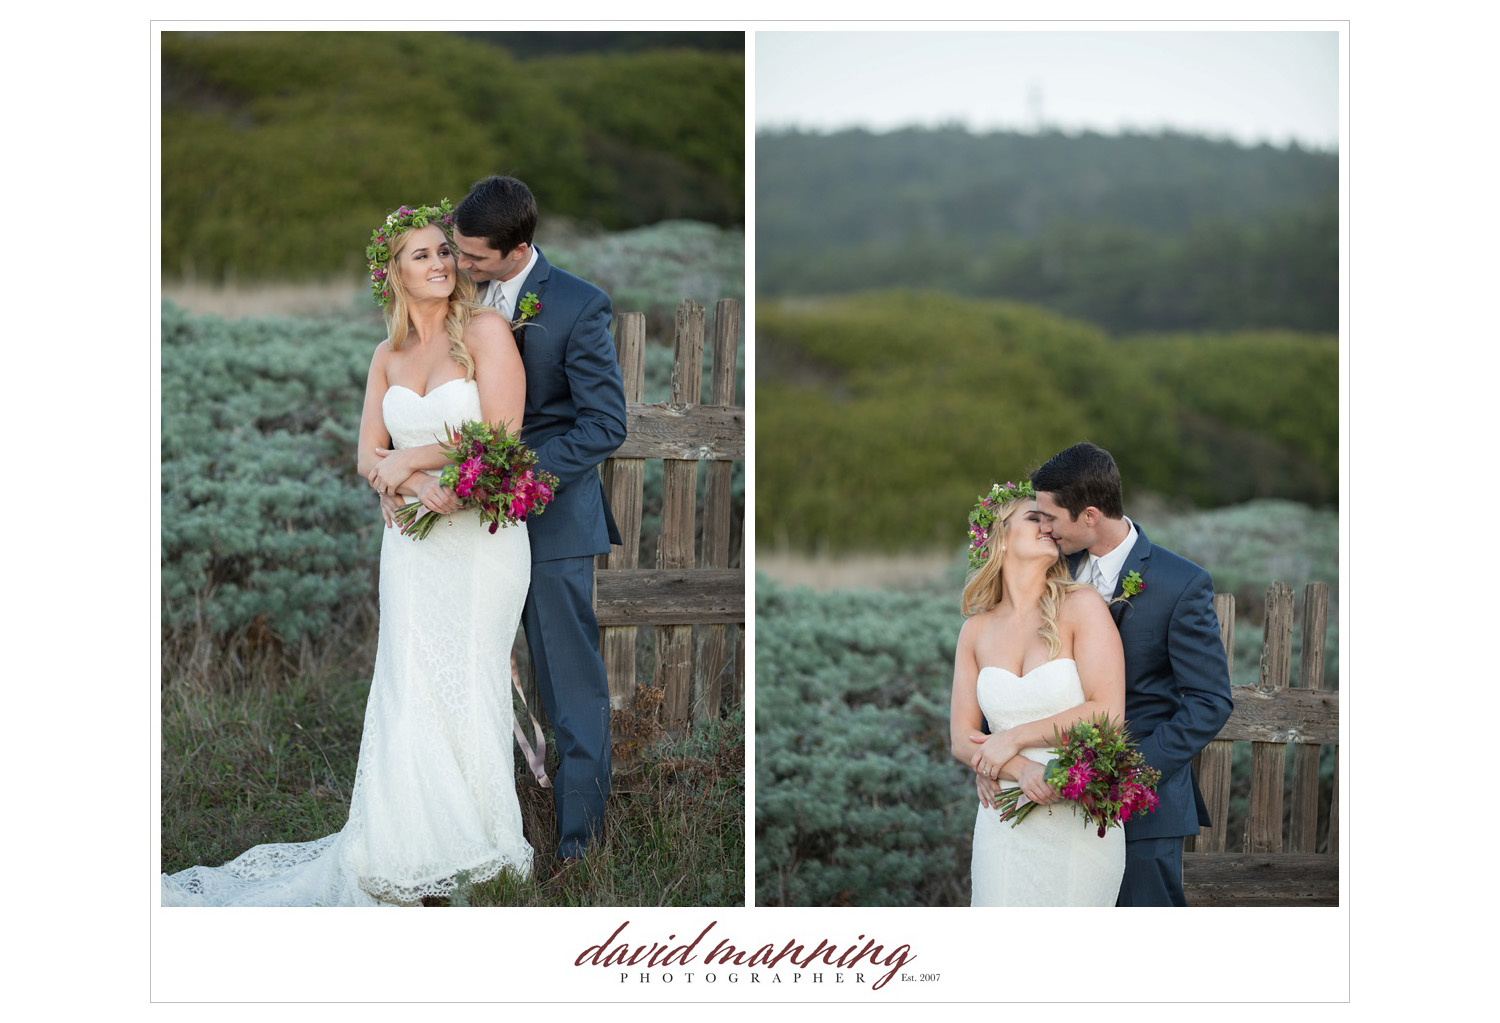 Sea-Ranch-Sonoma-Destination-Wedding-David-Manning-Photographers-141101-0047.jpg